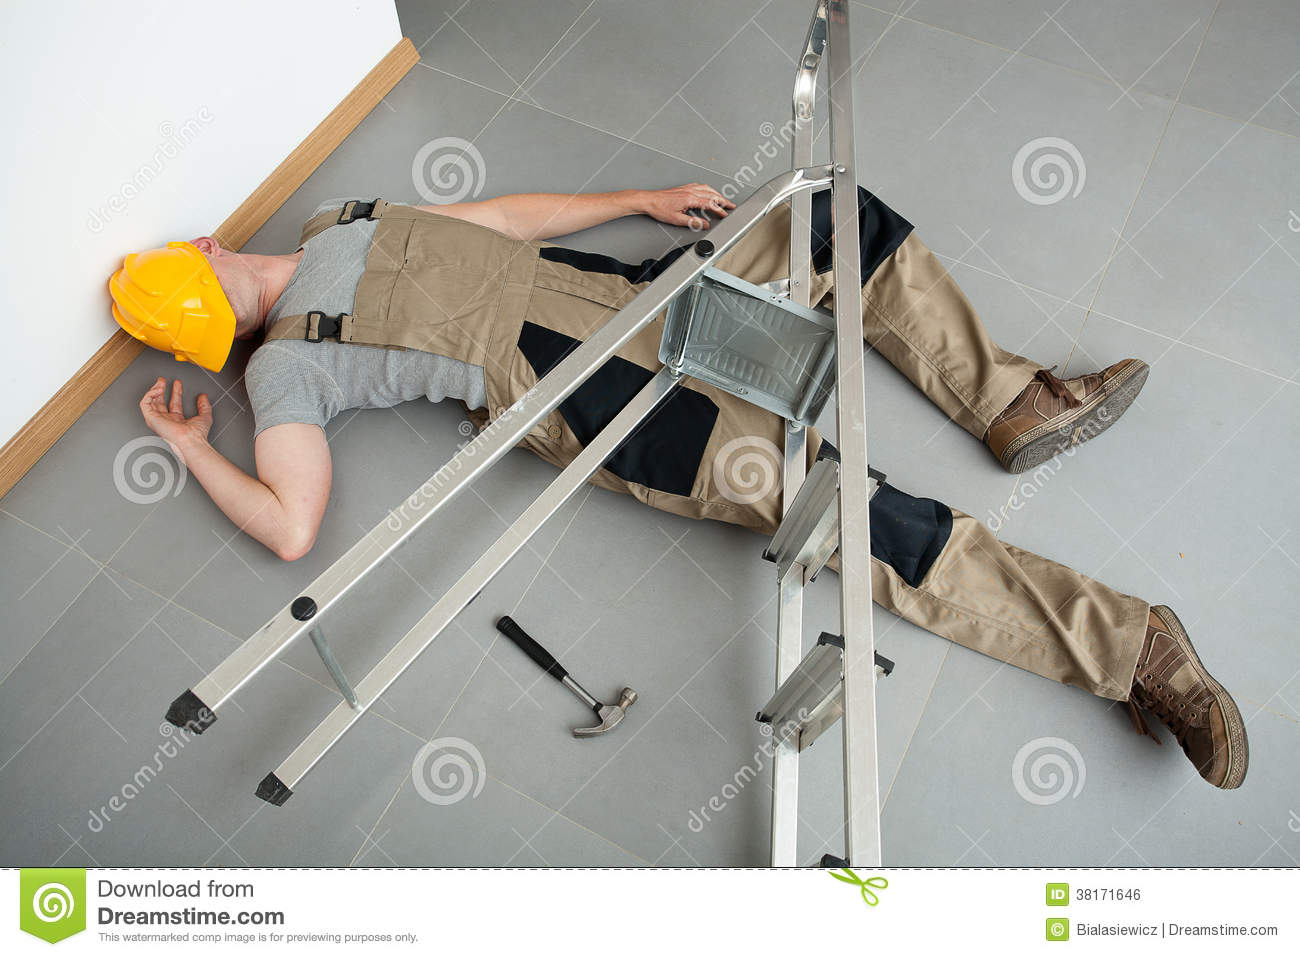 Pinched by a ladder